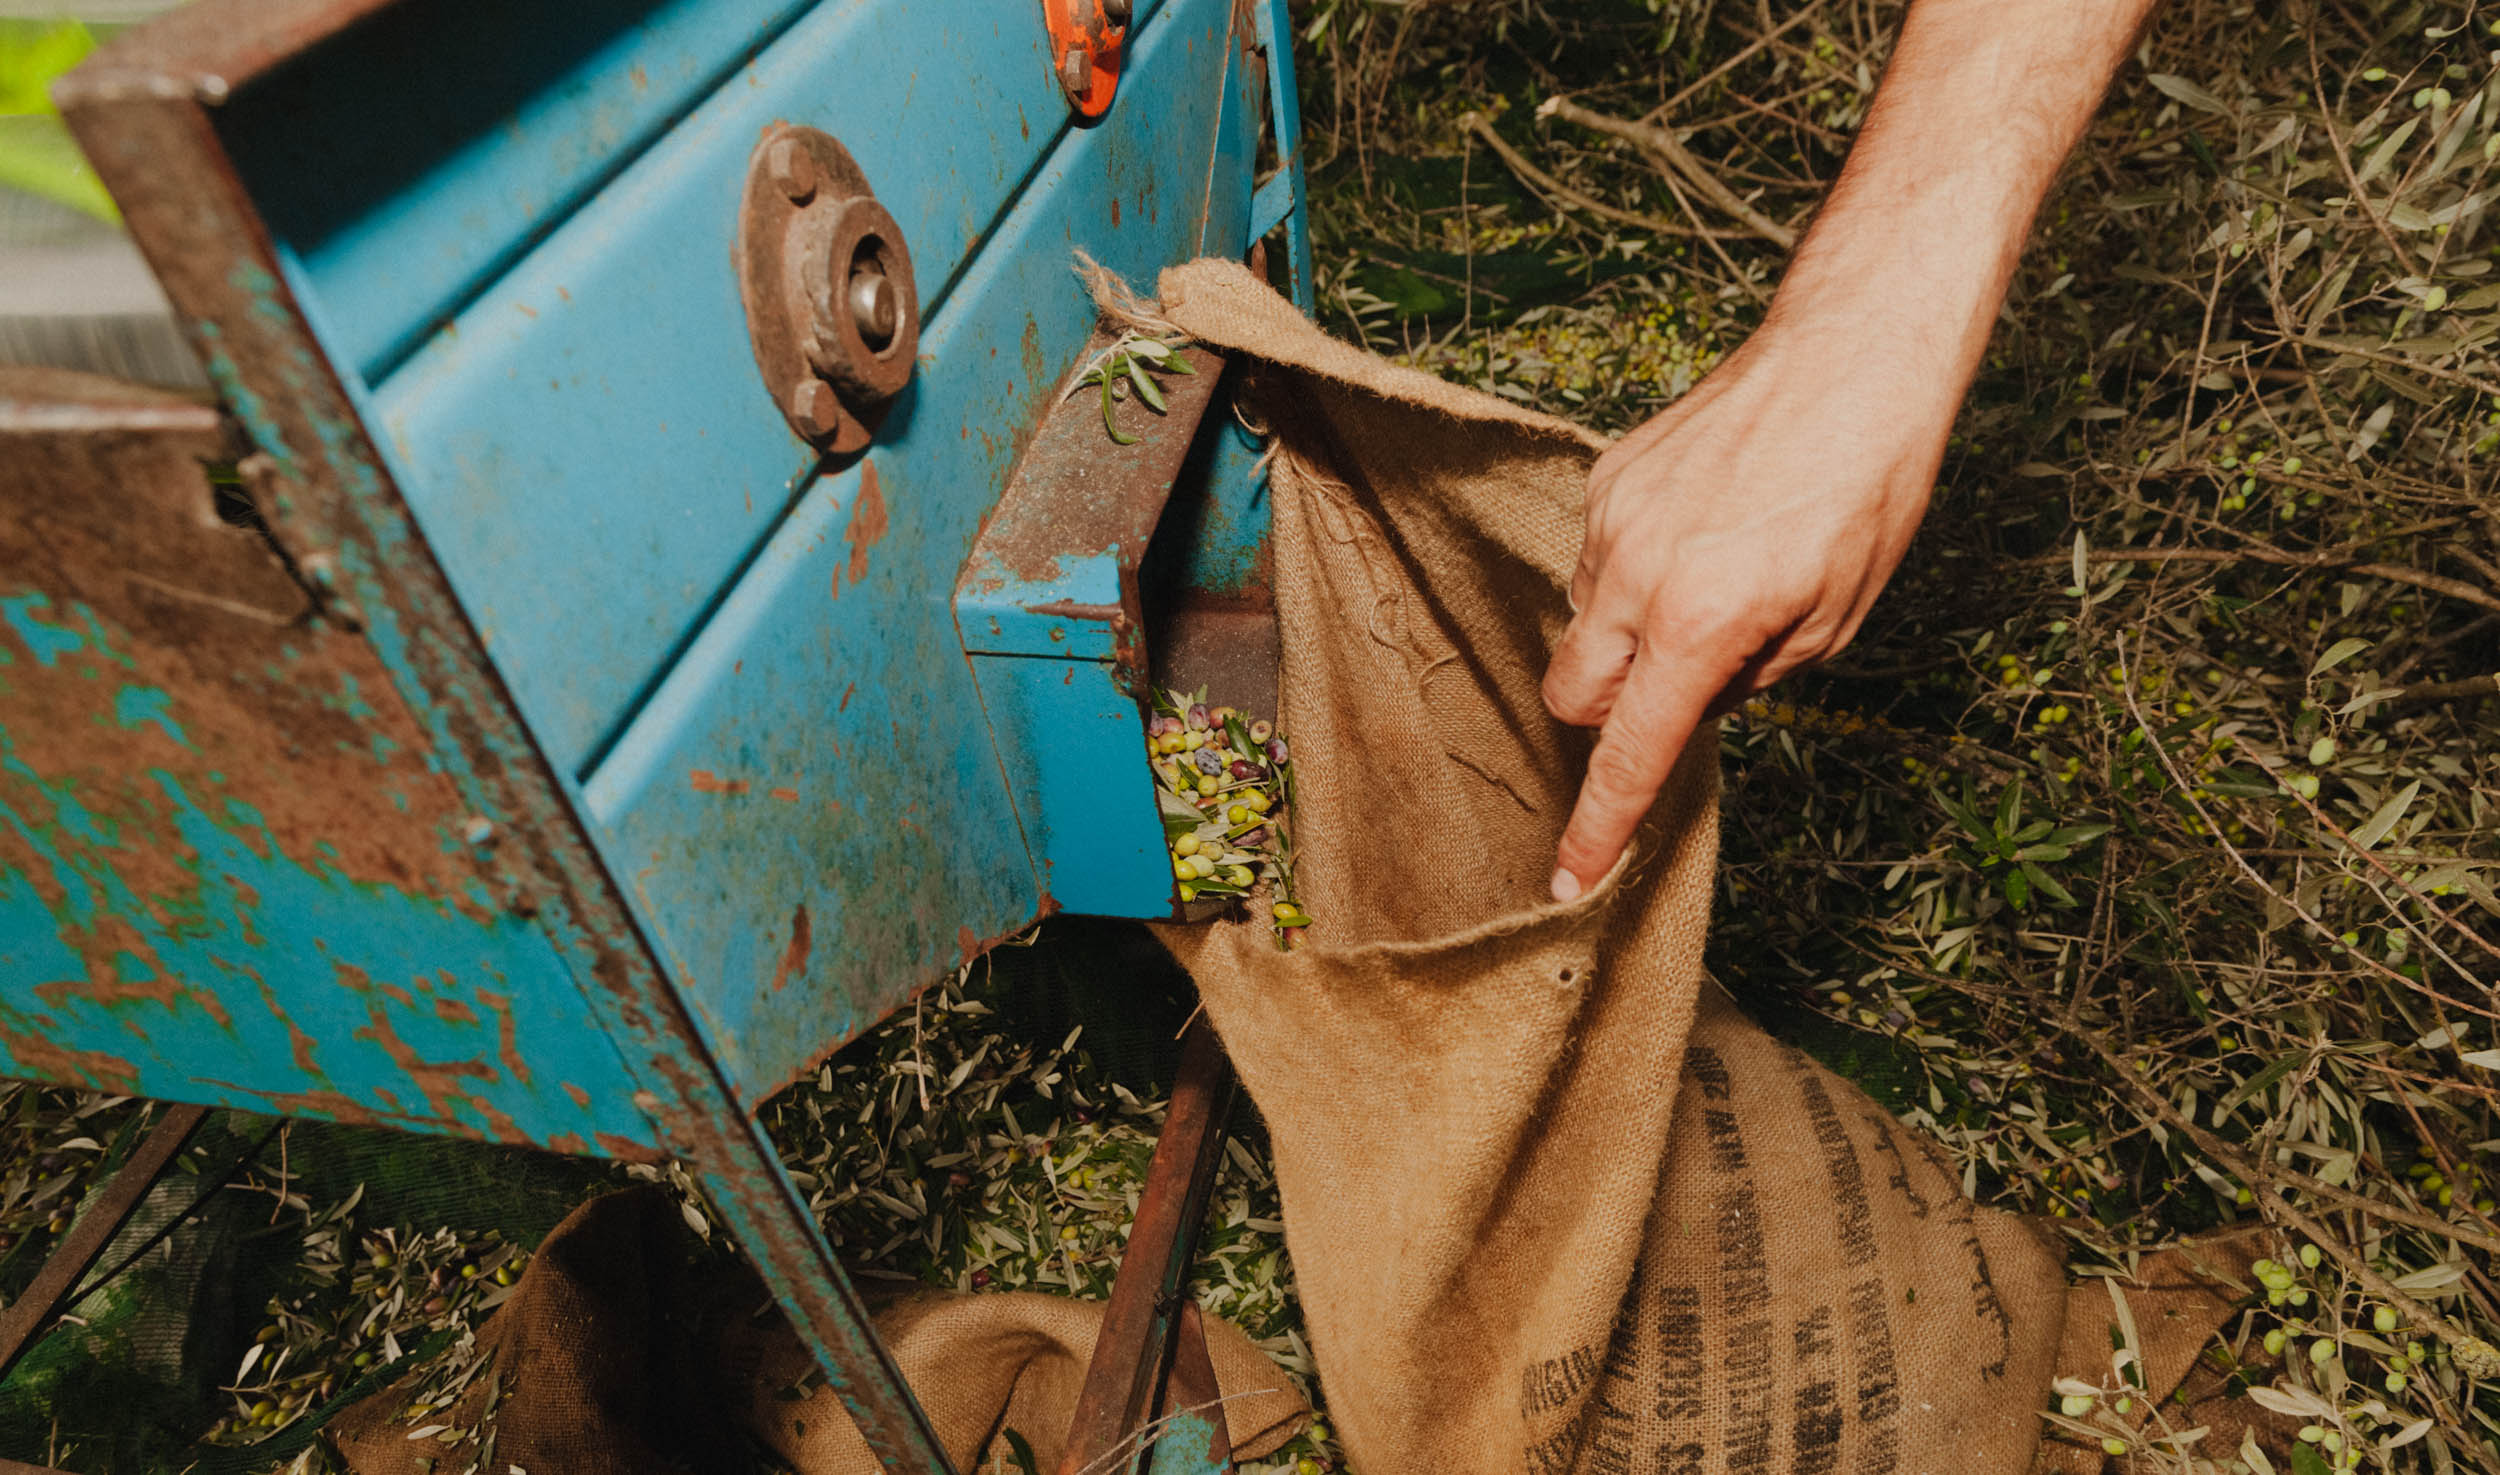 The vibrating machine delivers the harvested olives into the harvest sacks.